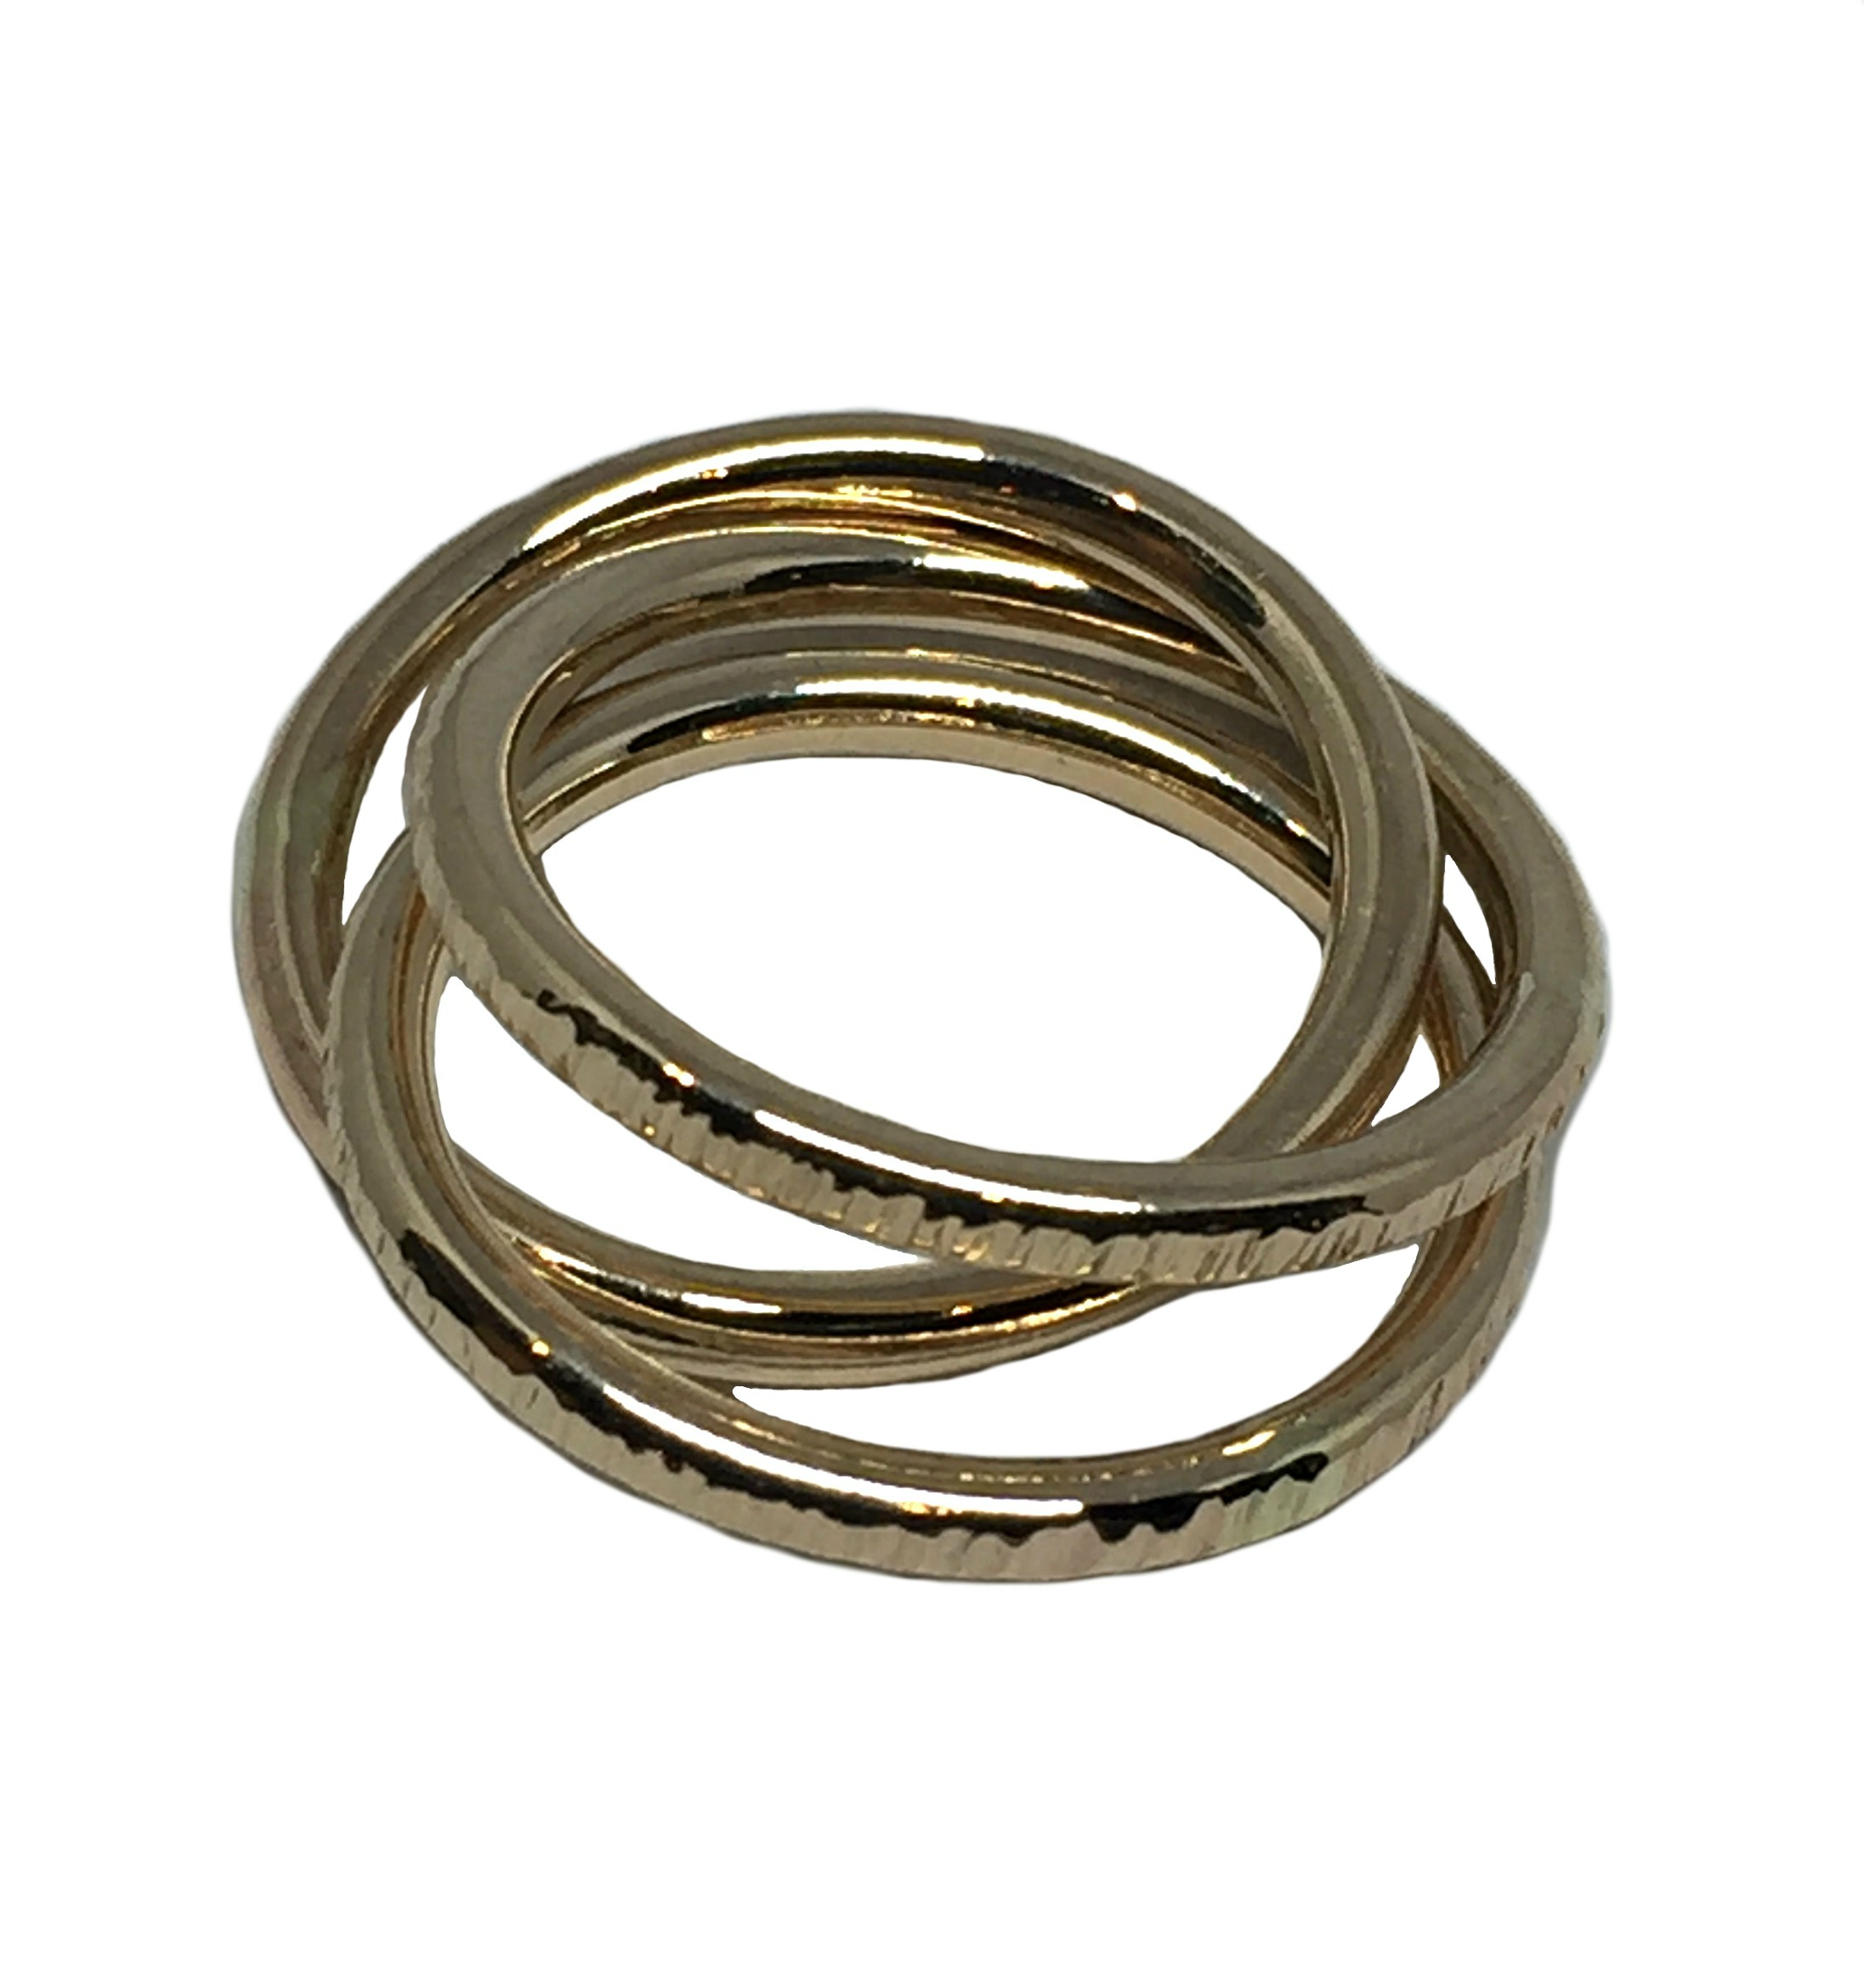 3 Interlocking Gold Rings by Karyn Chopik | Effusion Art Gallery + Cast Glass Studio, Invermere BC